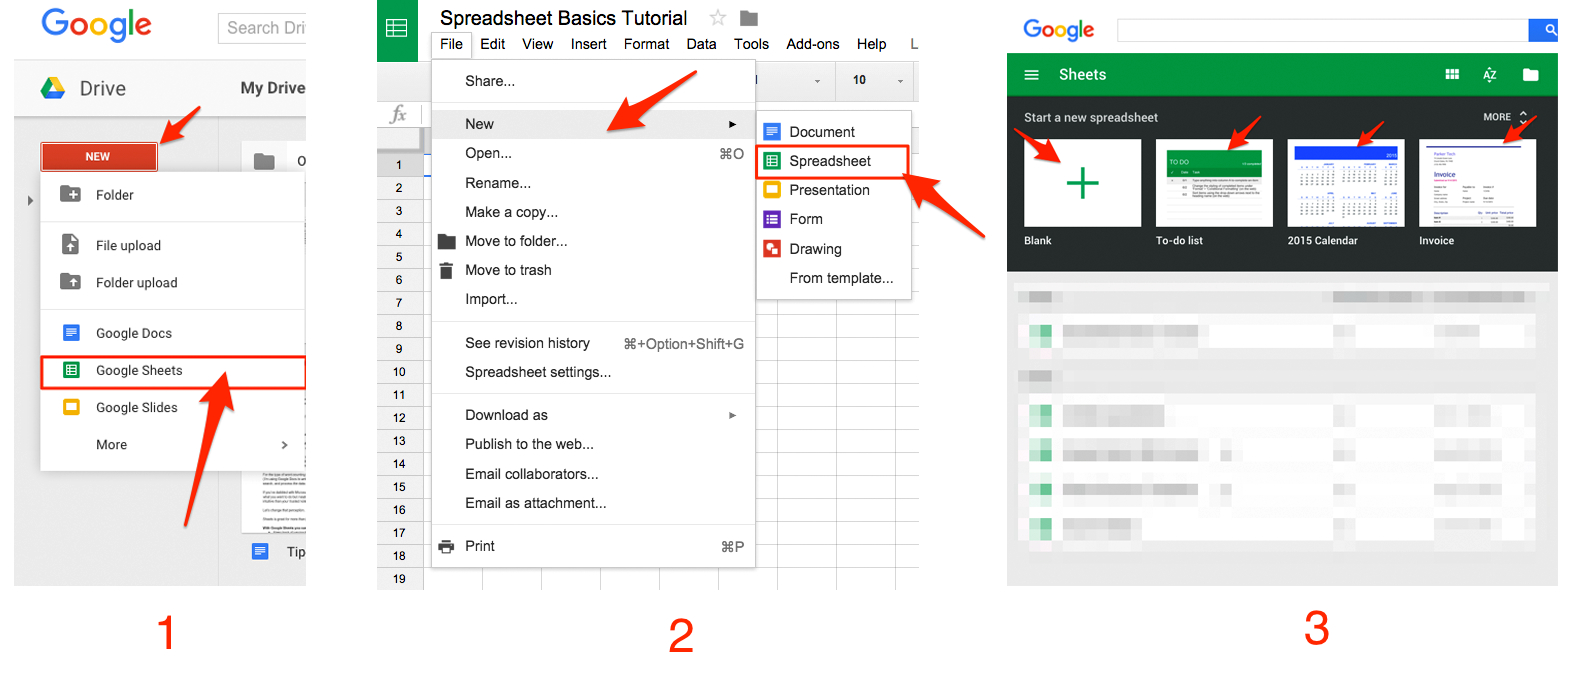 Excel Spreadsheet Tutorial For Google Sheets 101: The Beginner's Guide To Online Spreadsheets  The